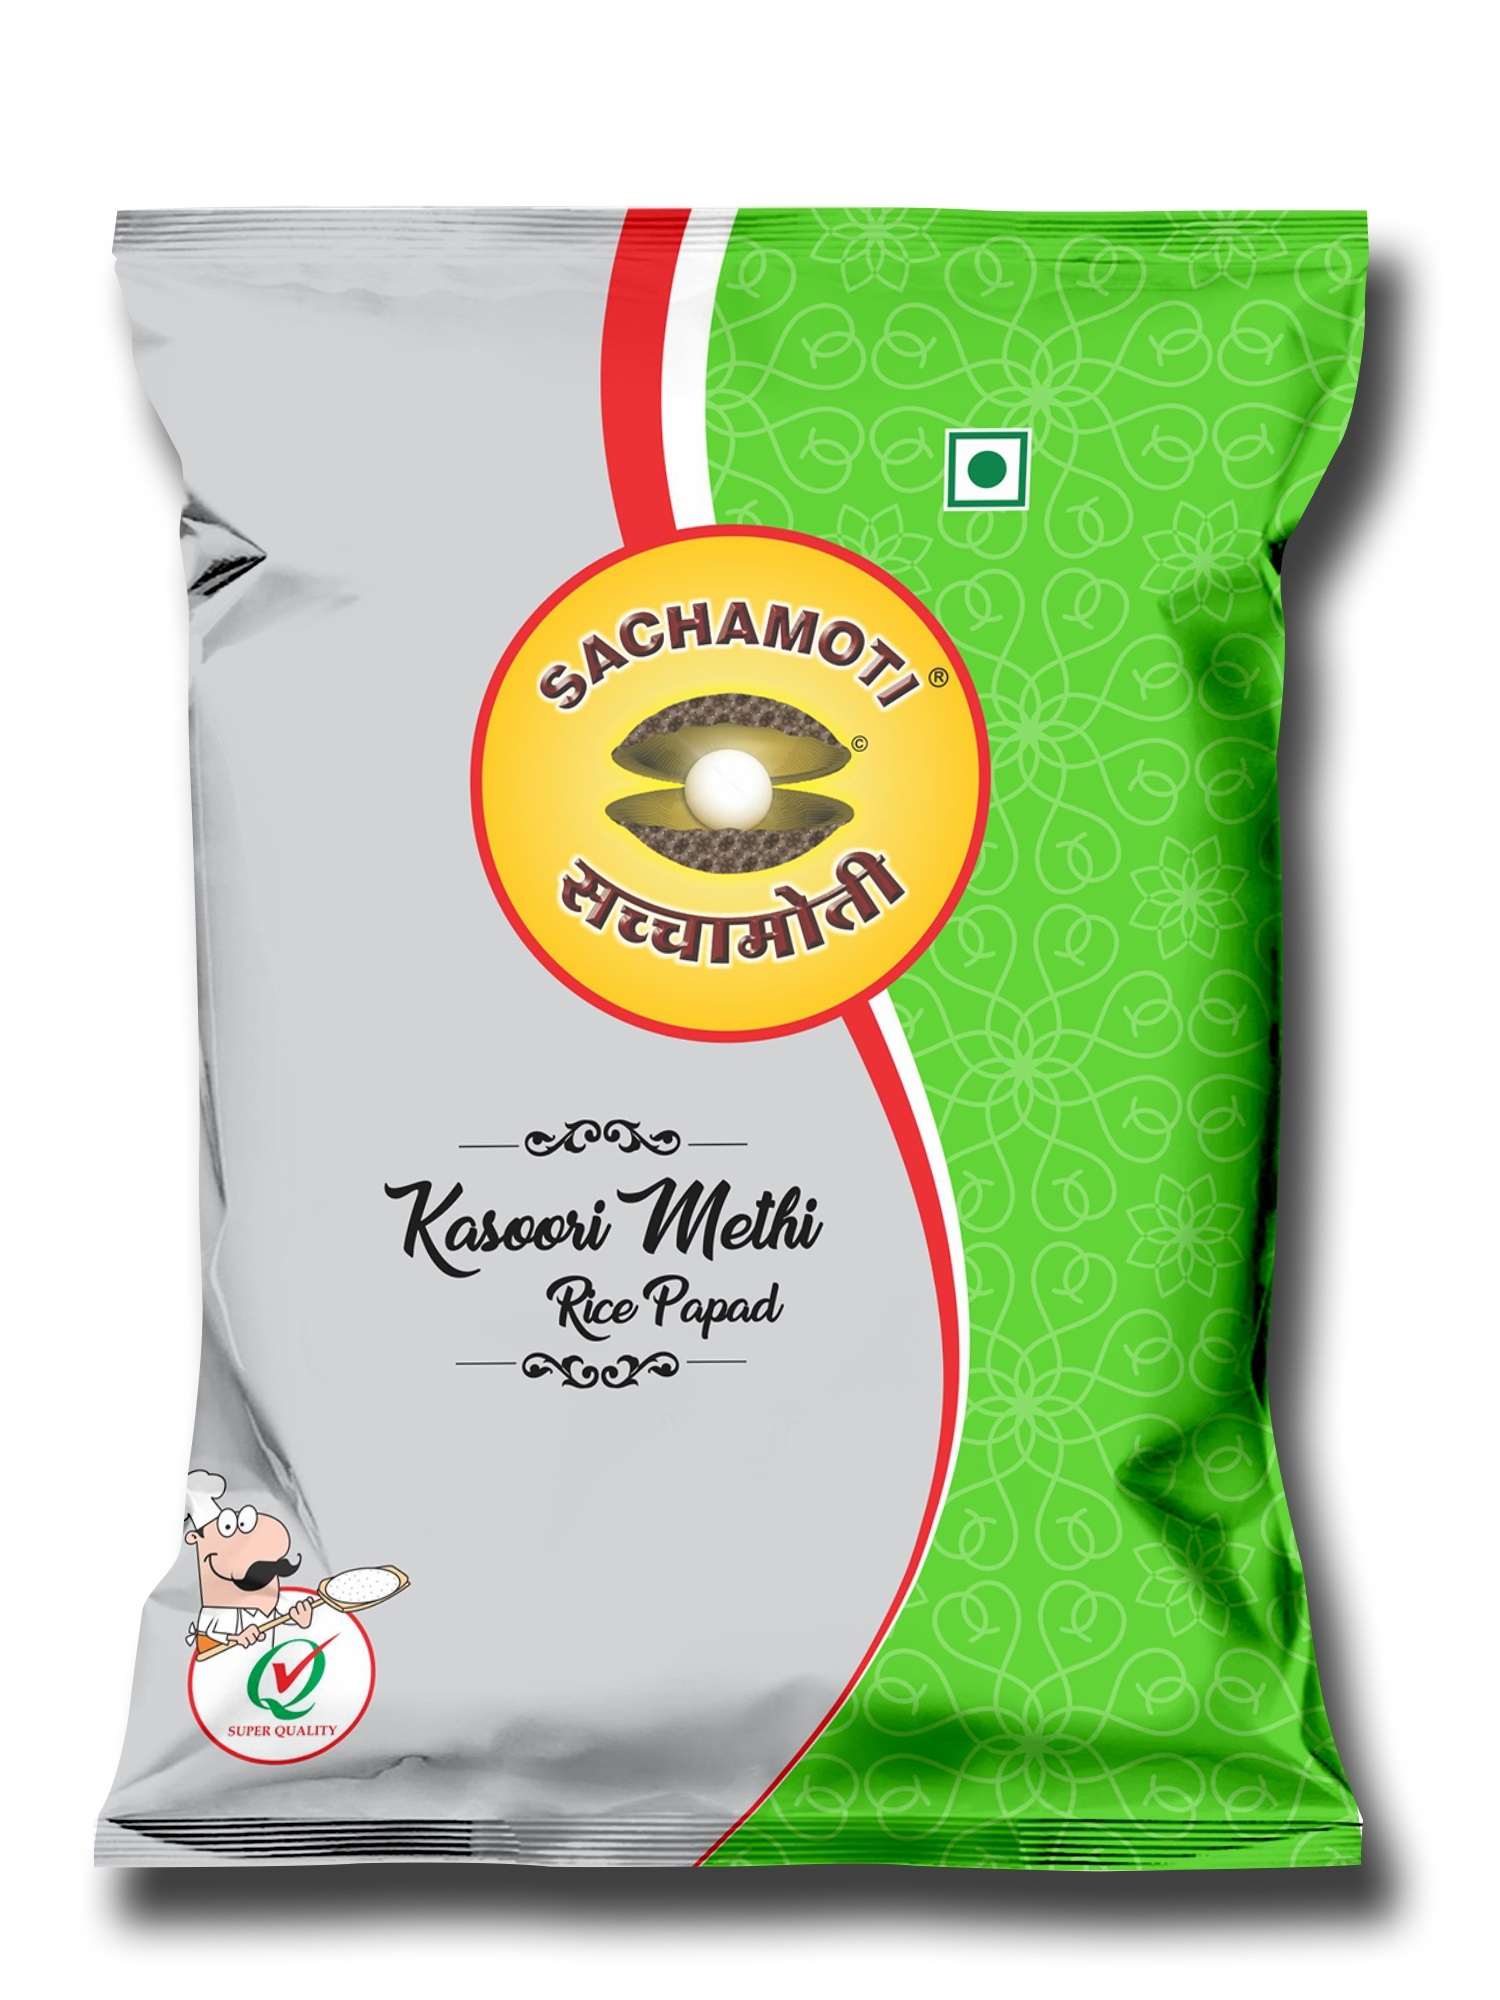 Sachamoti Rice Papad